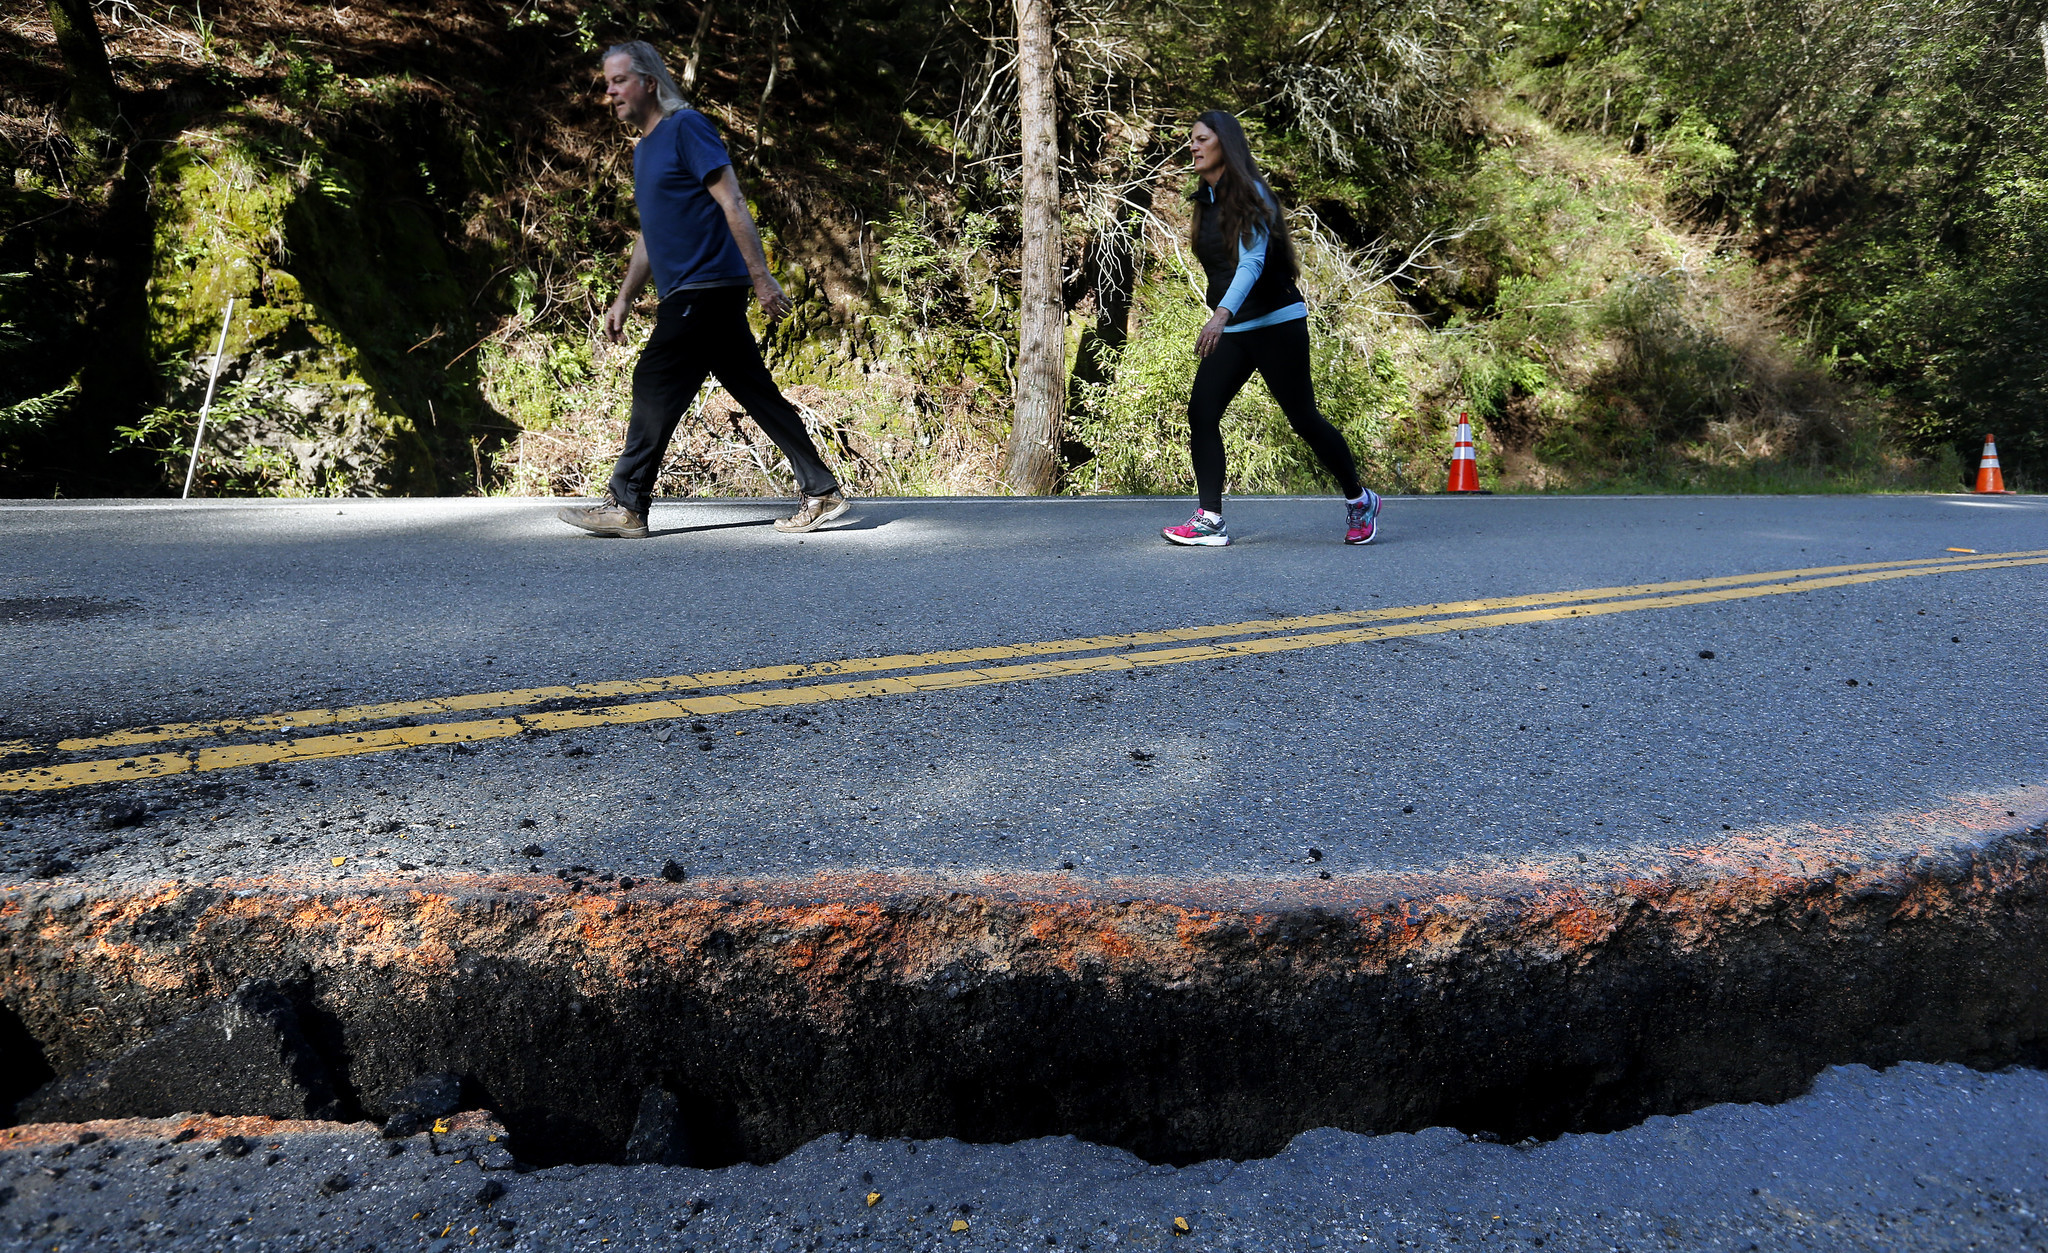 Along with landslides, Caltrans will have to repair the asphalt on Highway One in Big Sur, which was damaged by runoff from winter storms.